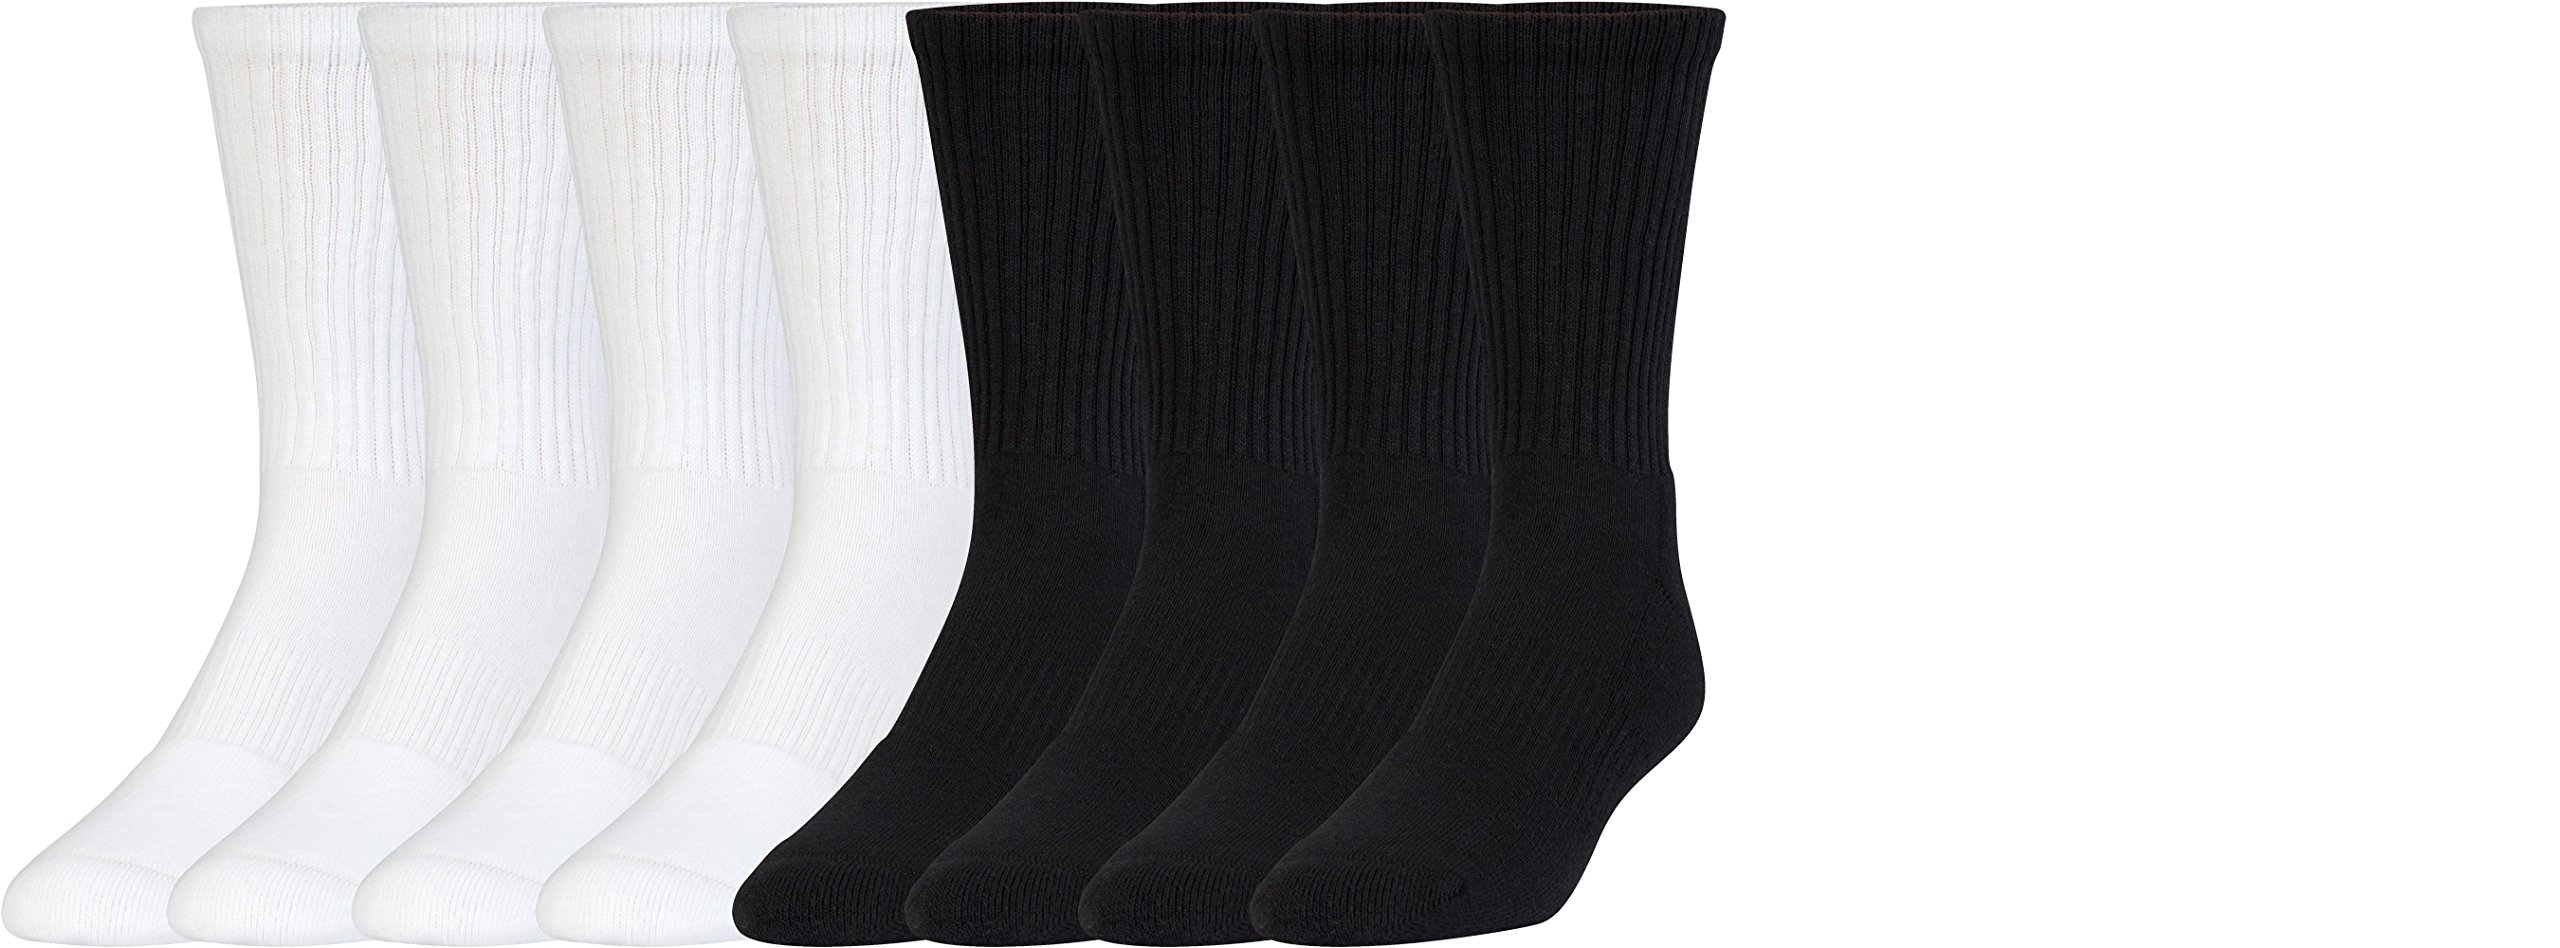 Under Armour Boys Charged Cotton 2.0 Crew Socks (8 Pack), Large, Assorted by Under Armour